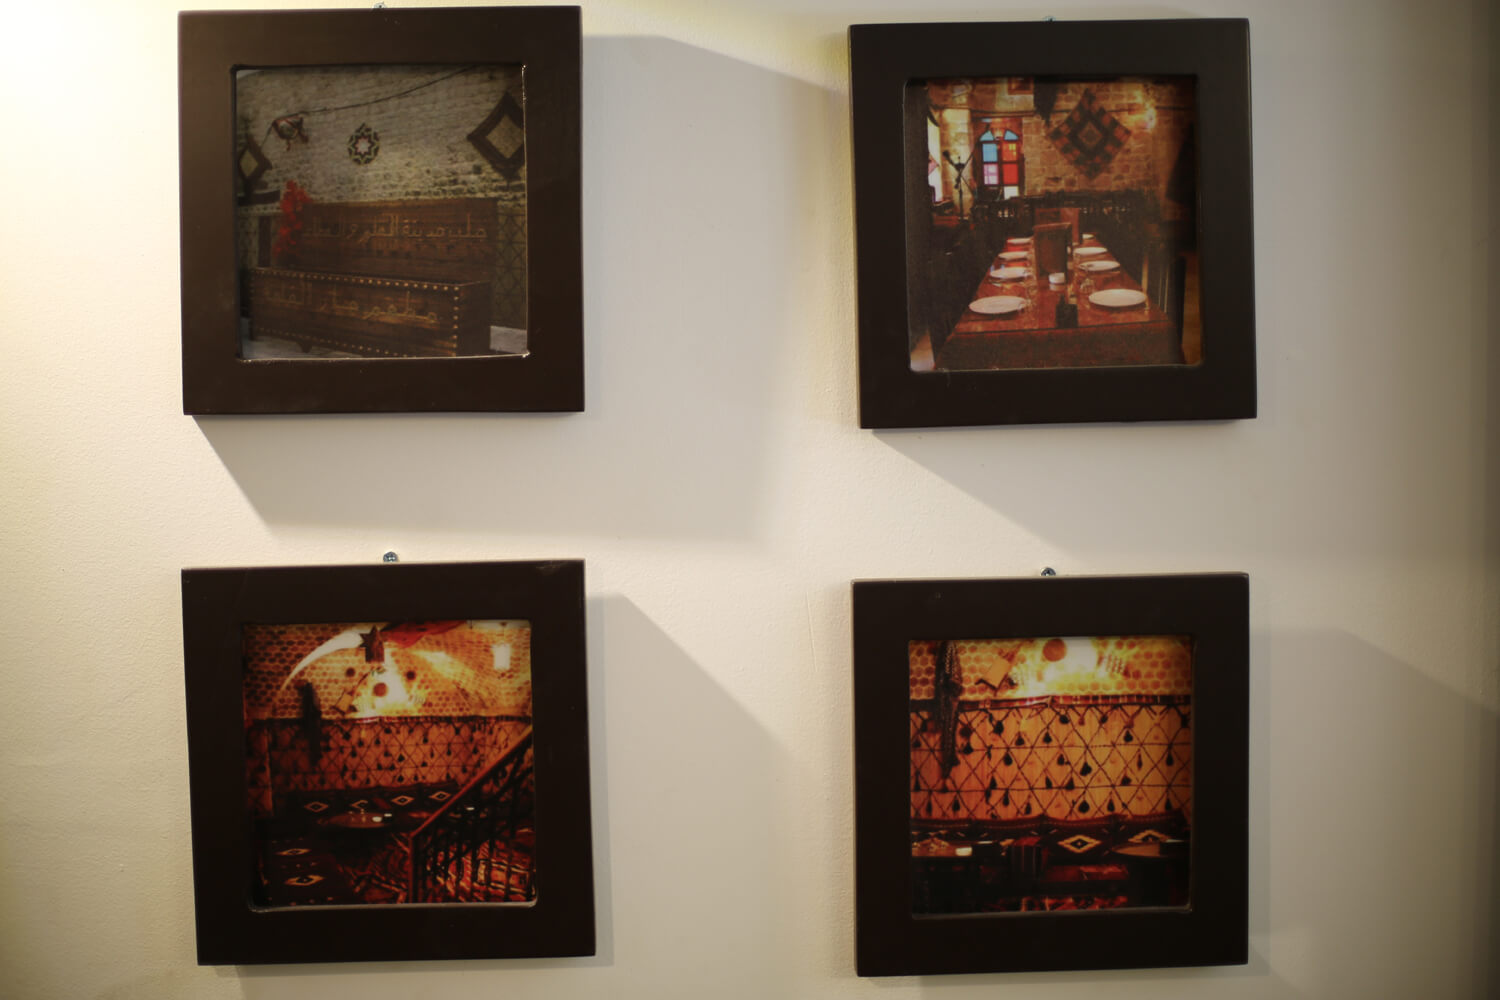 Photos of the destroyed restaurant in Aleppo now displayed in Gaza. (Photo: Mohammed Asad)